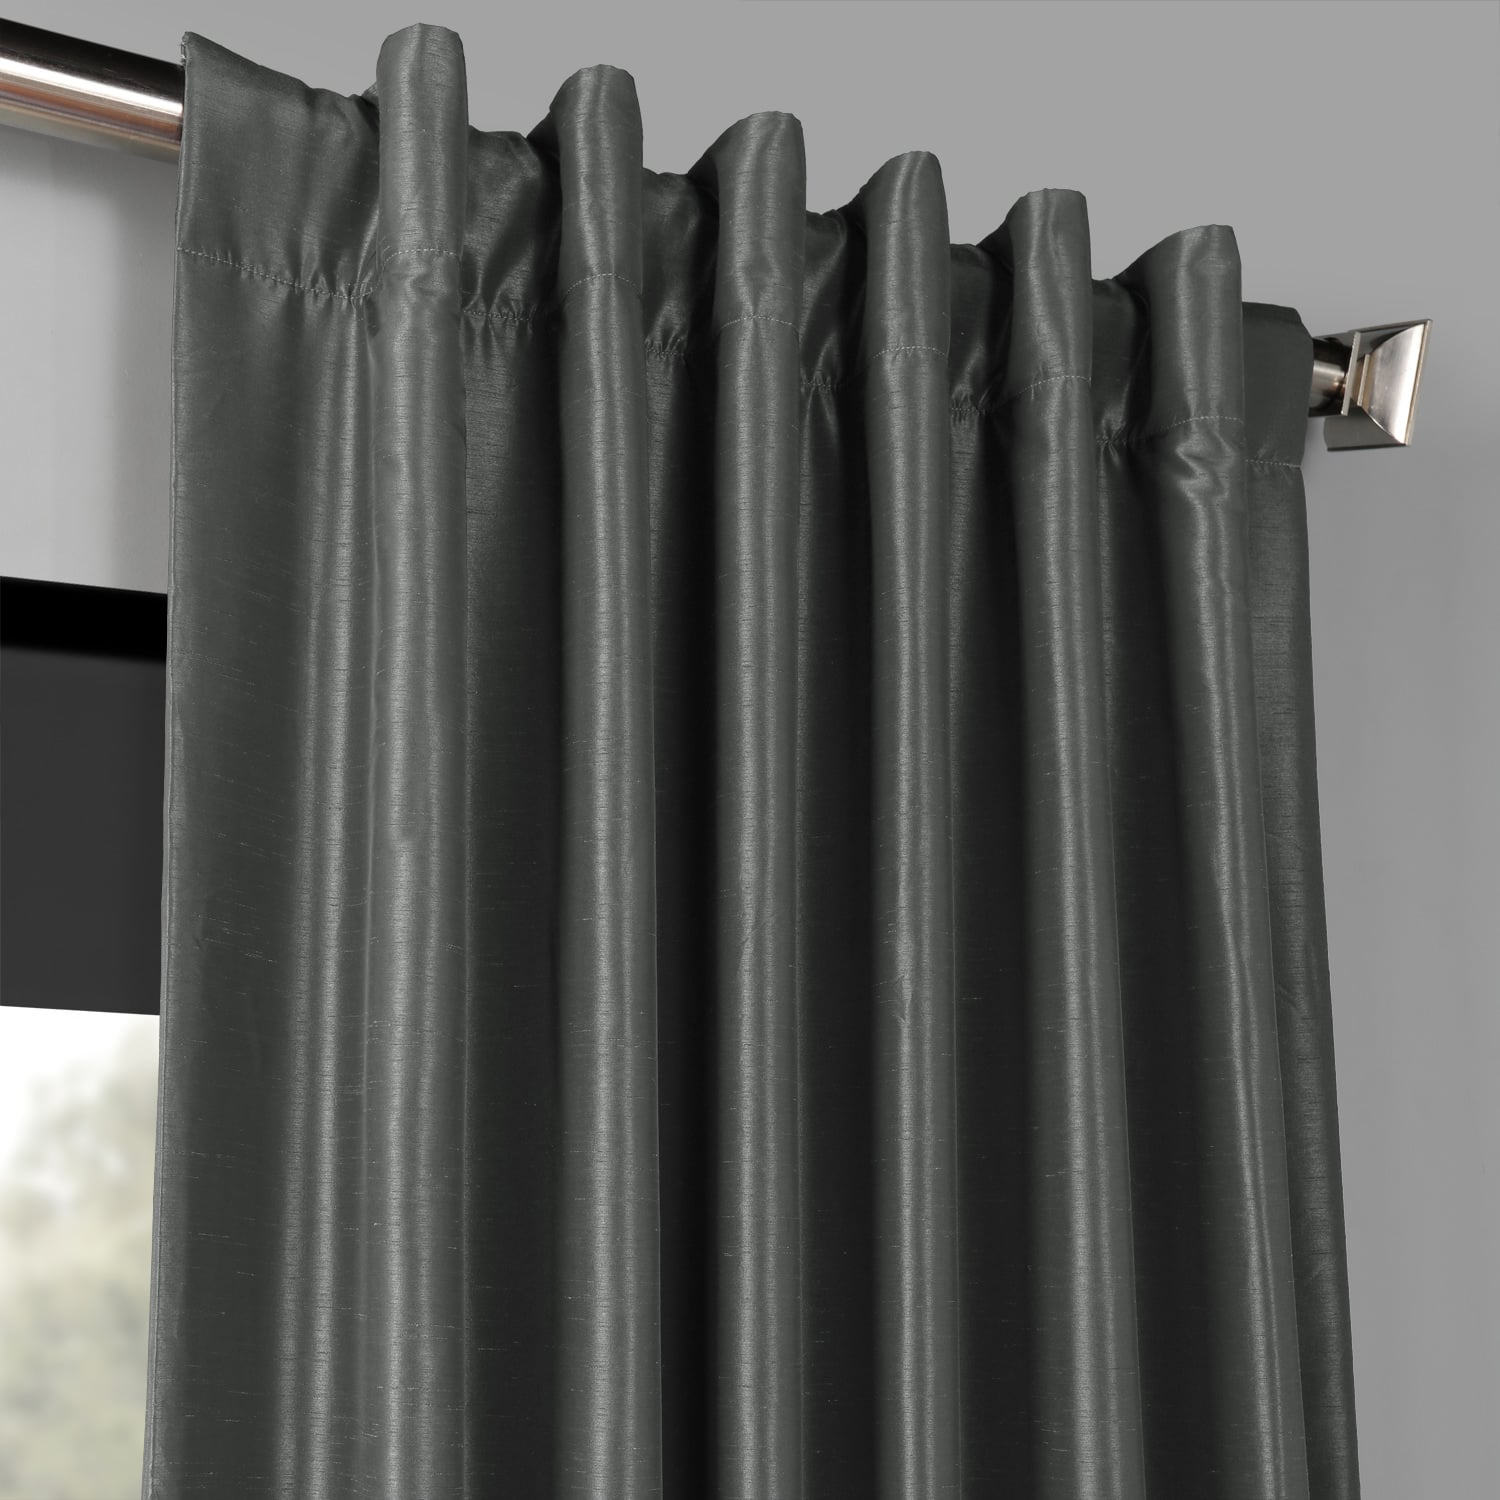 Arrowhead Grey Blackout Vintage Textured Faux Dupioni Silk Curtain